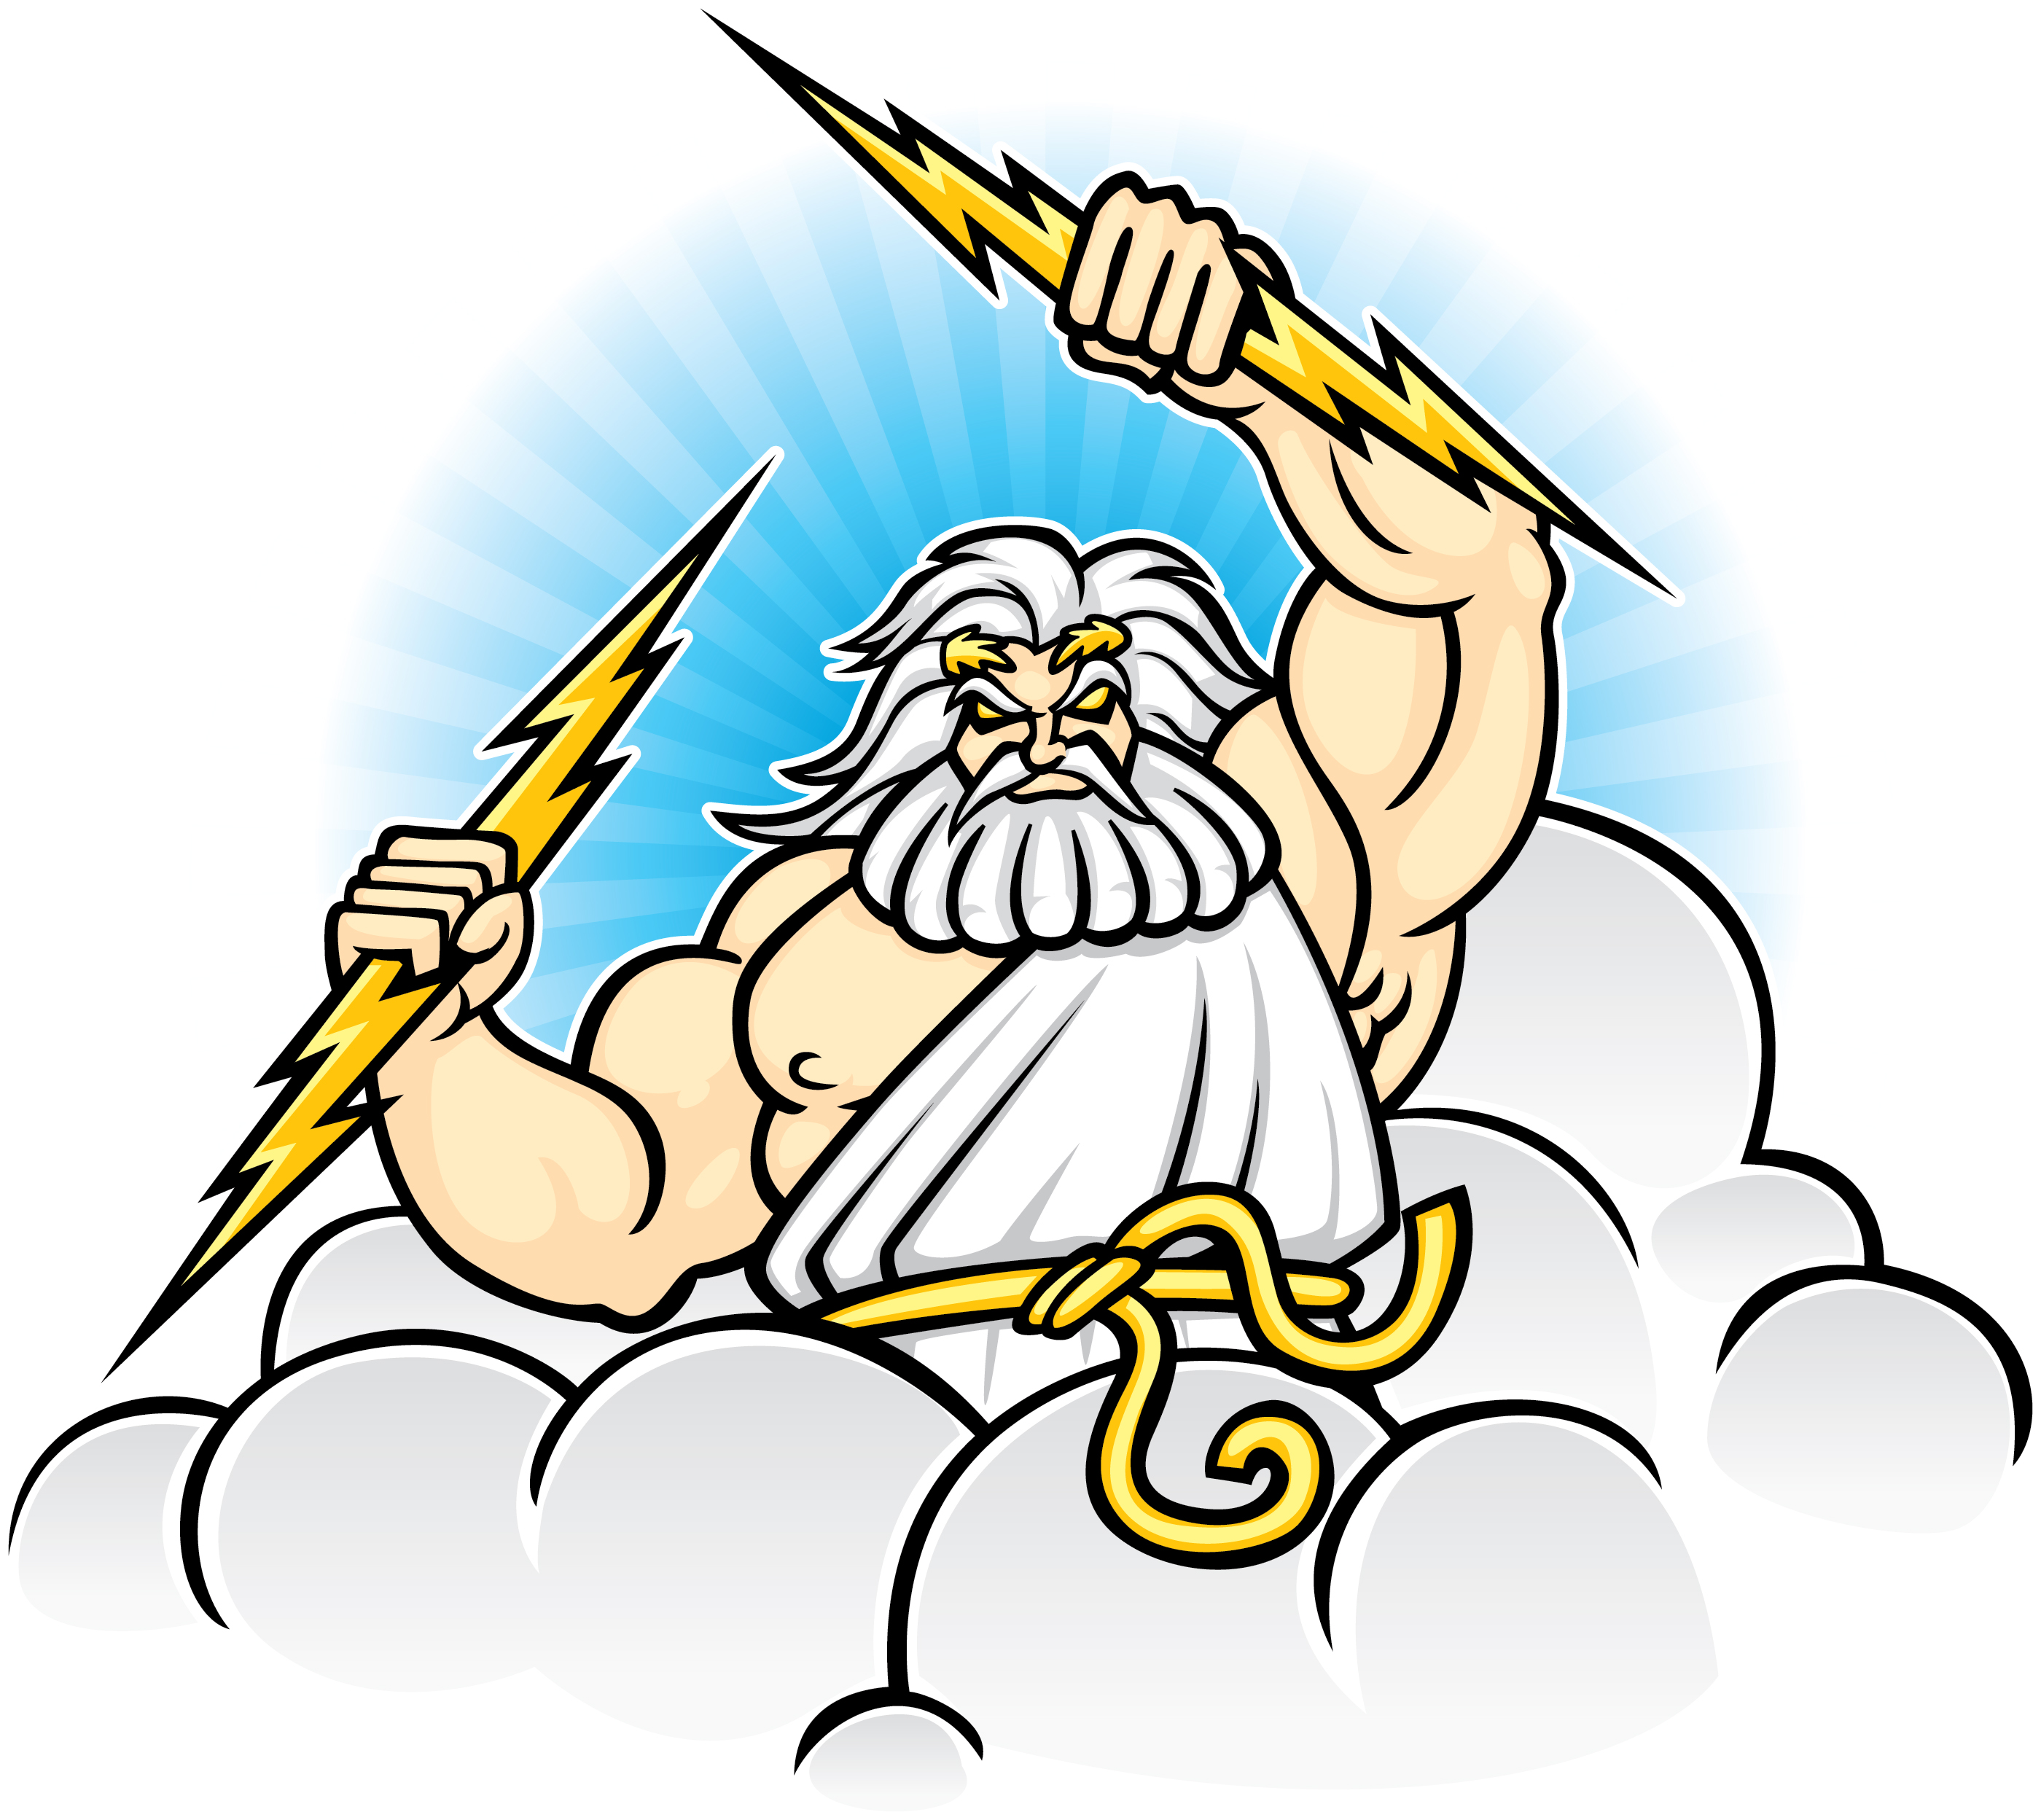 Free Angry God Cliparts, Download Free Clip Art, Free Clip.